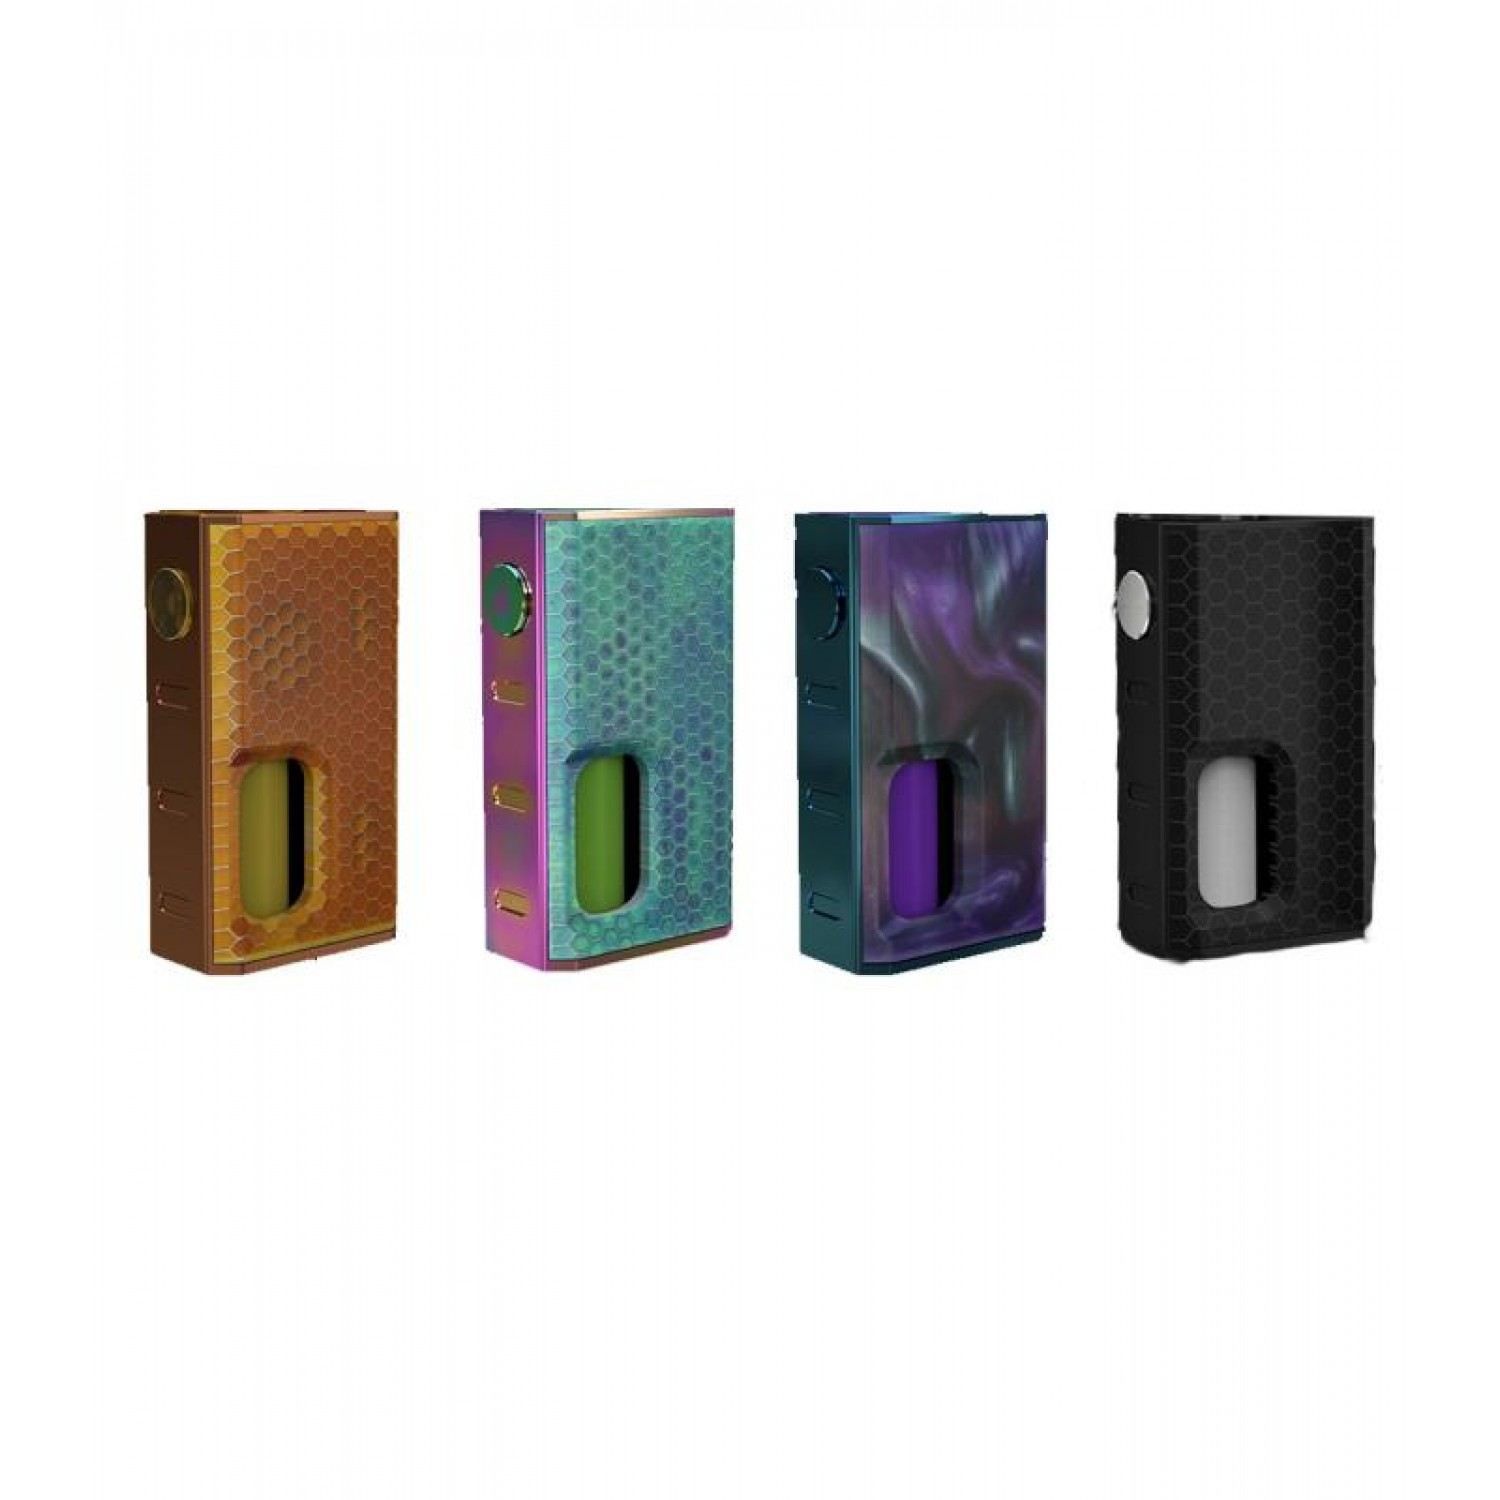 Wismec Luxotic Color BF Mod